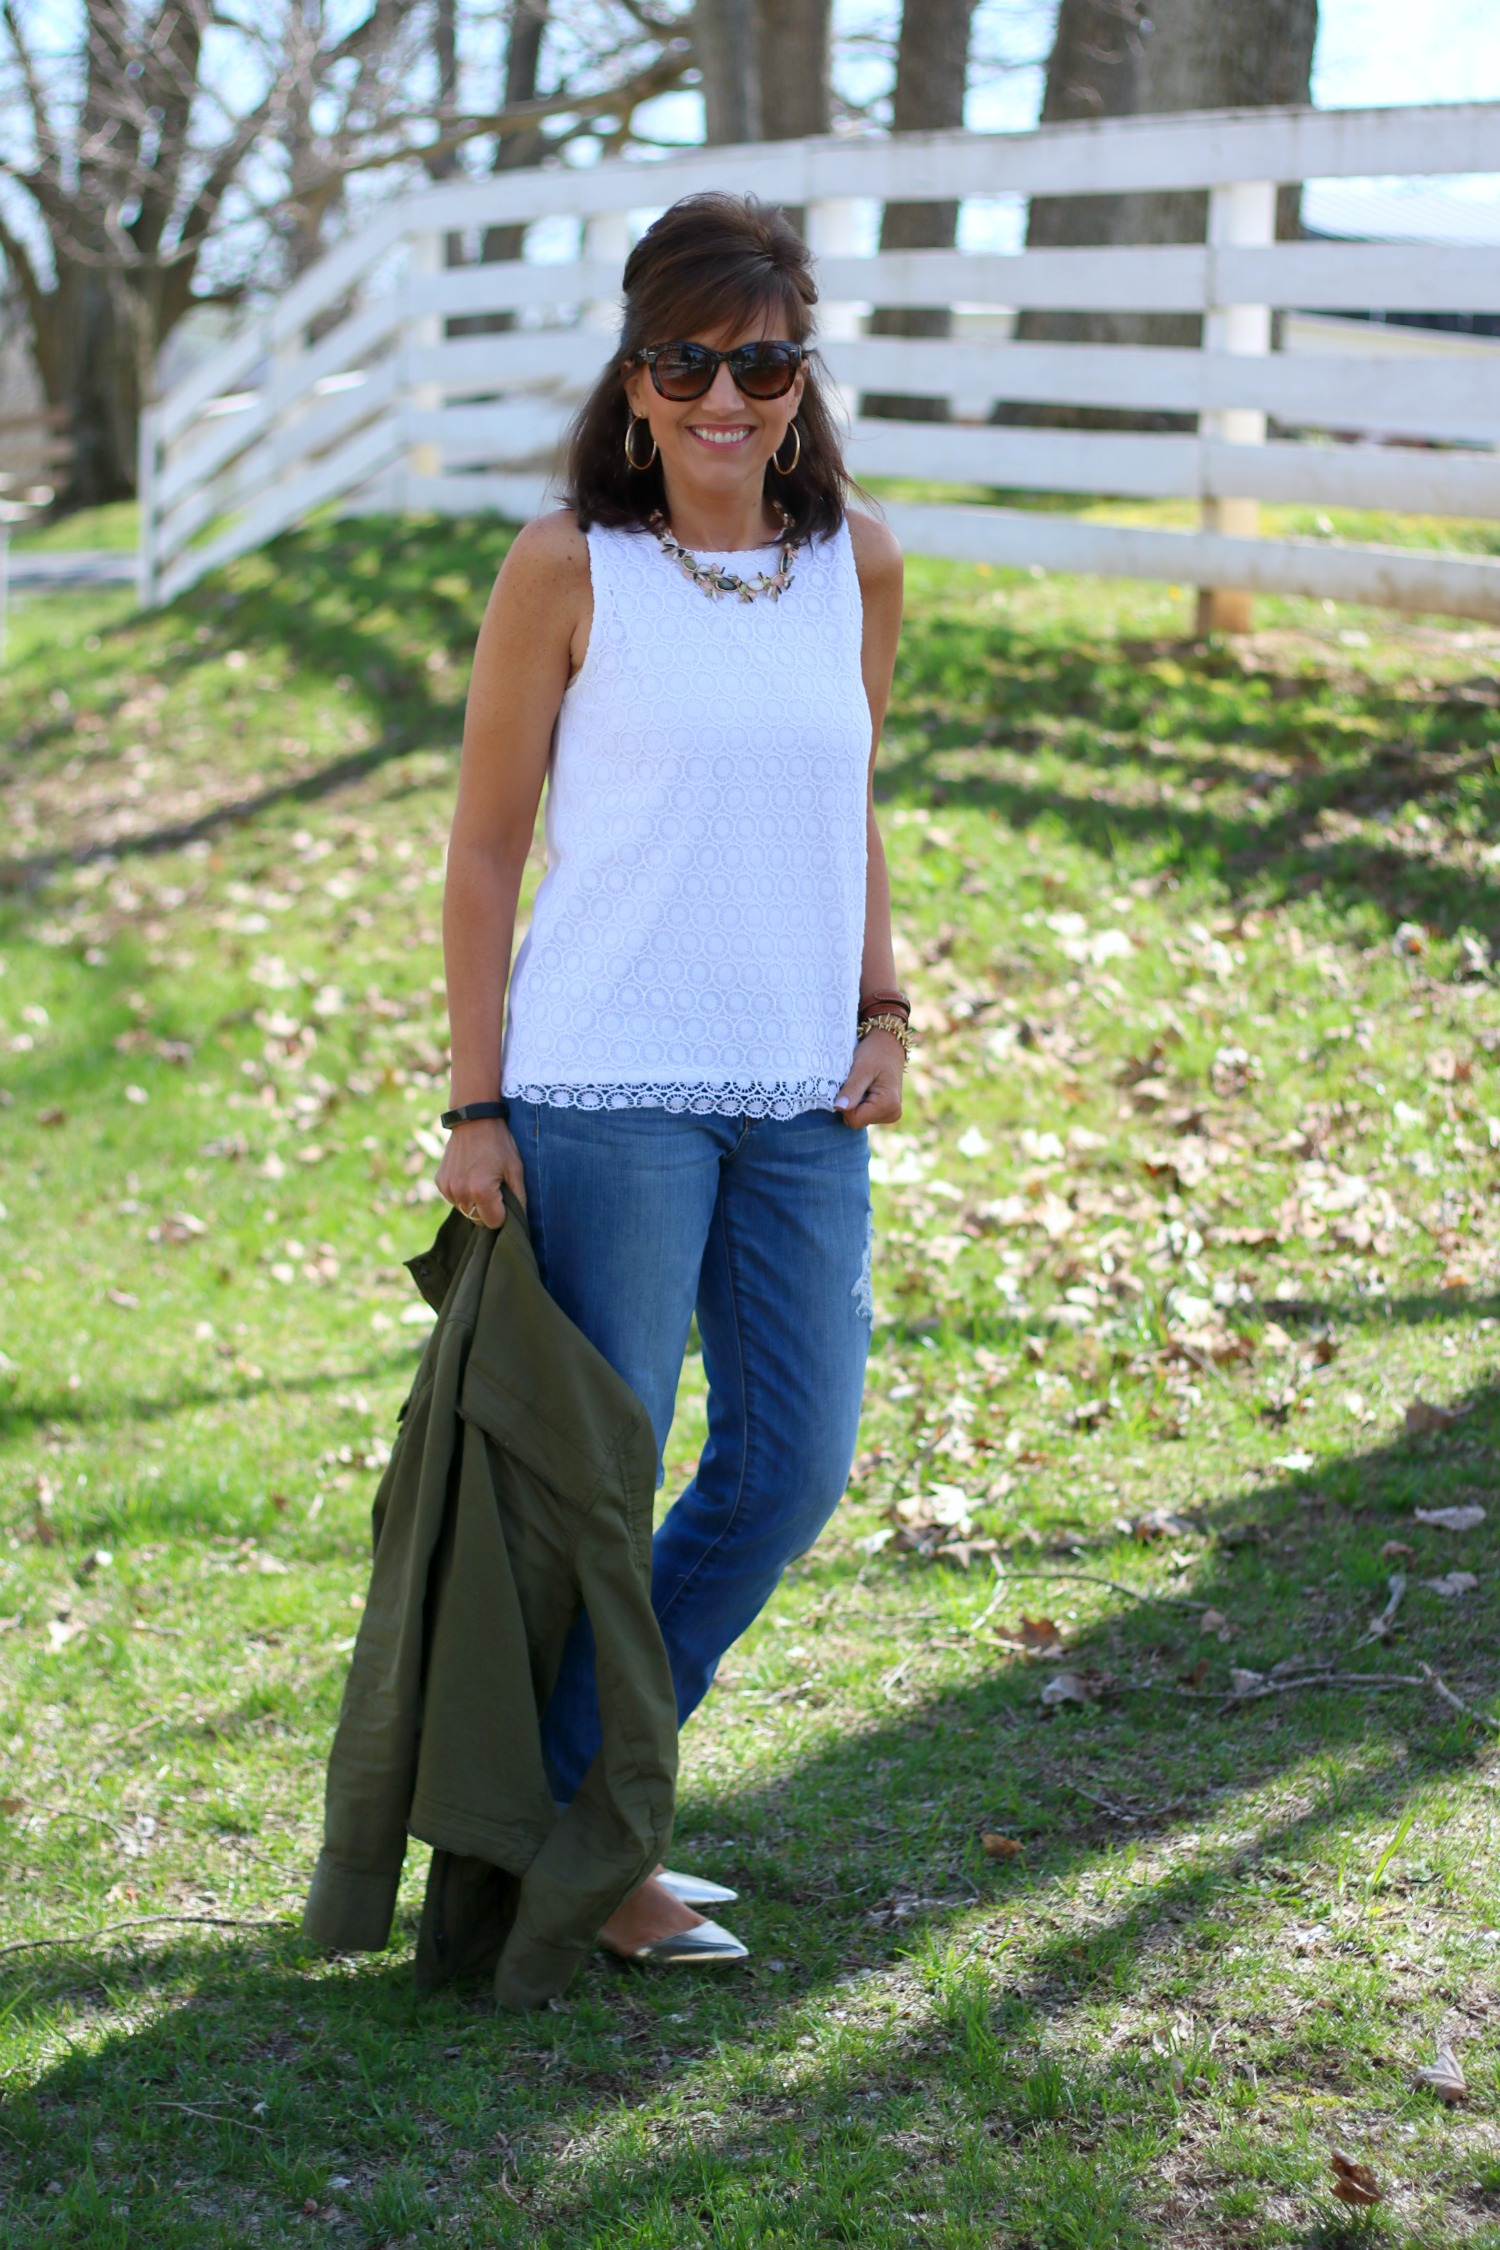 27 Days of Spring Fashion: Lace Top with Distressed Jeans